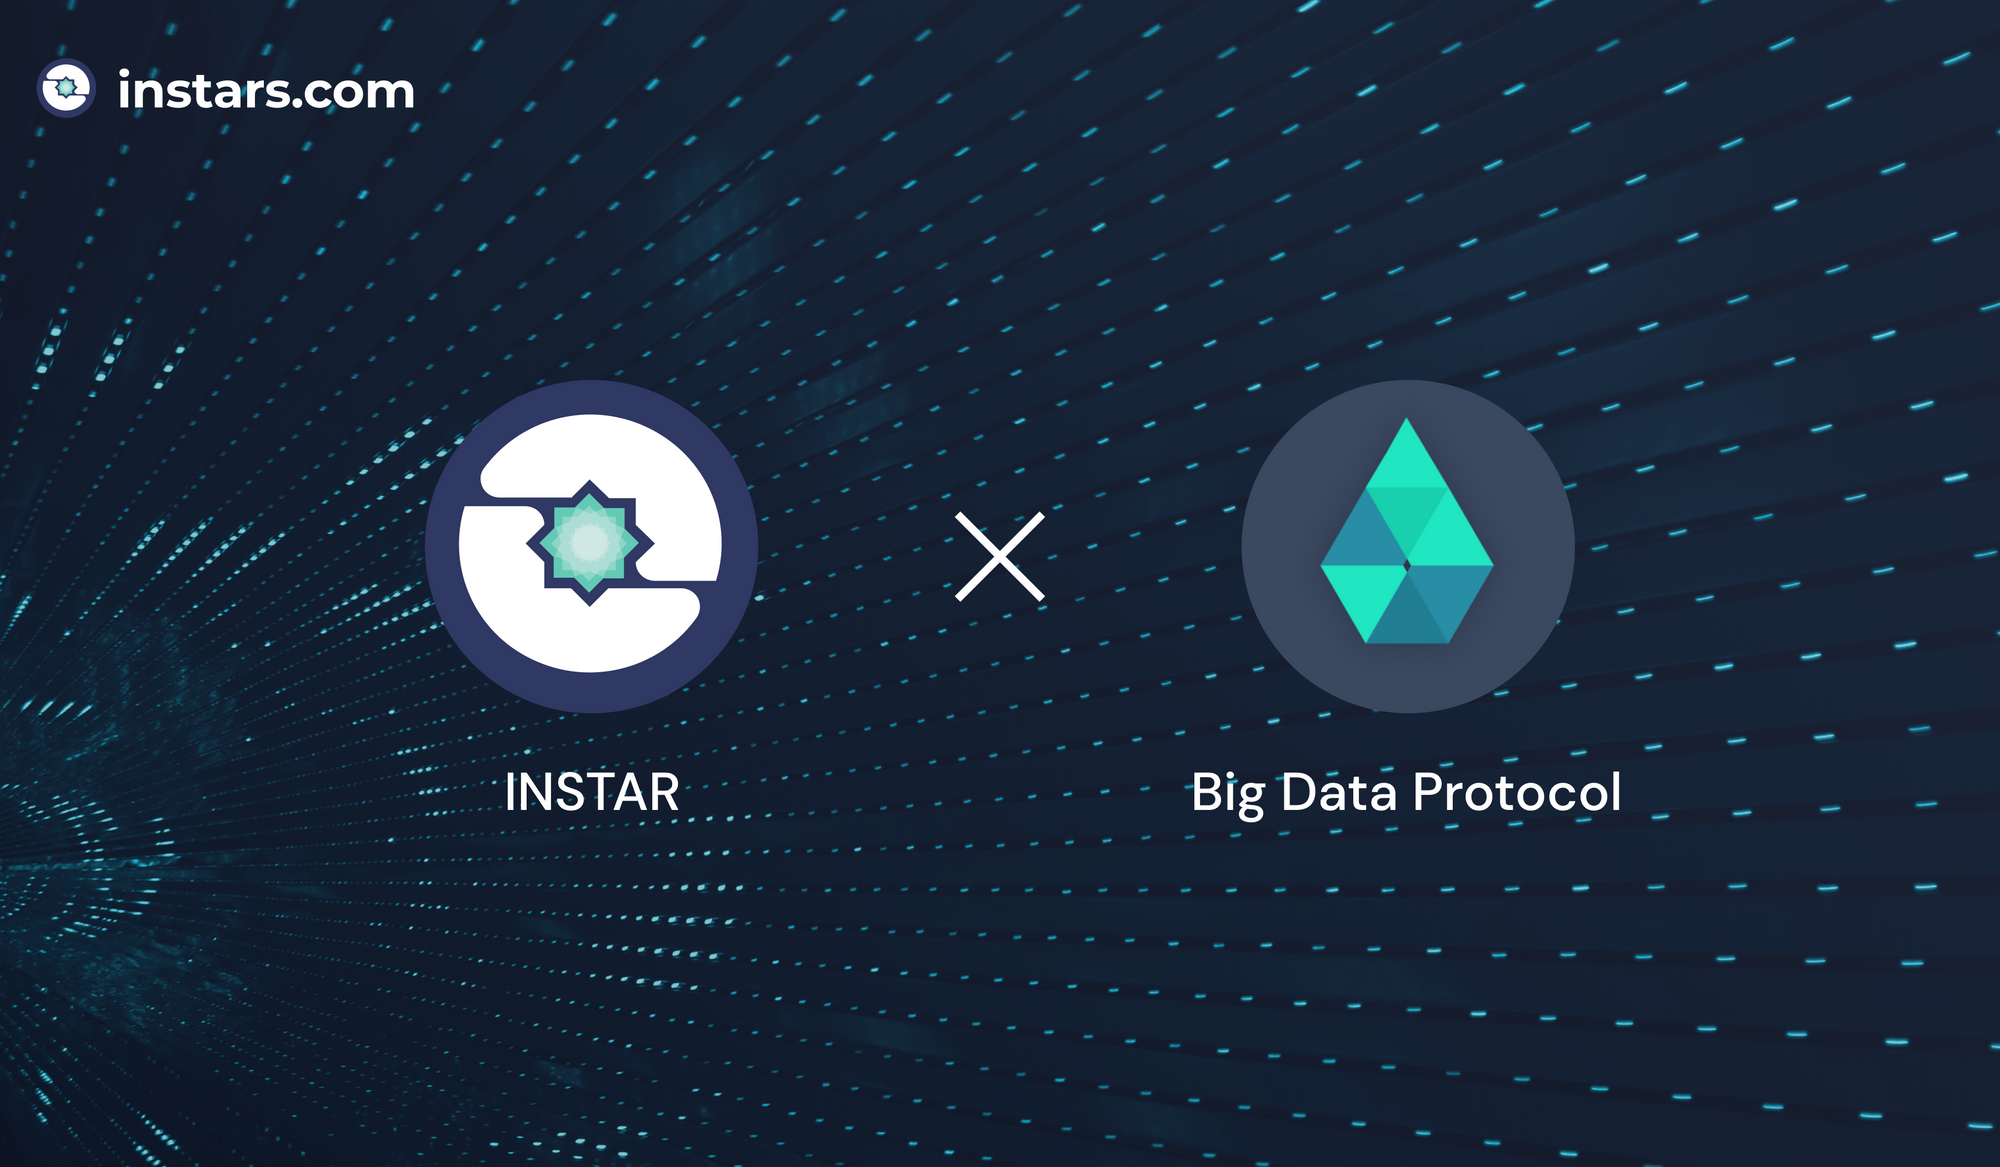 Instars.com & Big Data Protocol Enable Mutually Beneficial Data Exchange for Online Surveys and In-Store Shopping and Dining Experiences